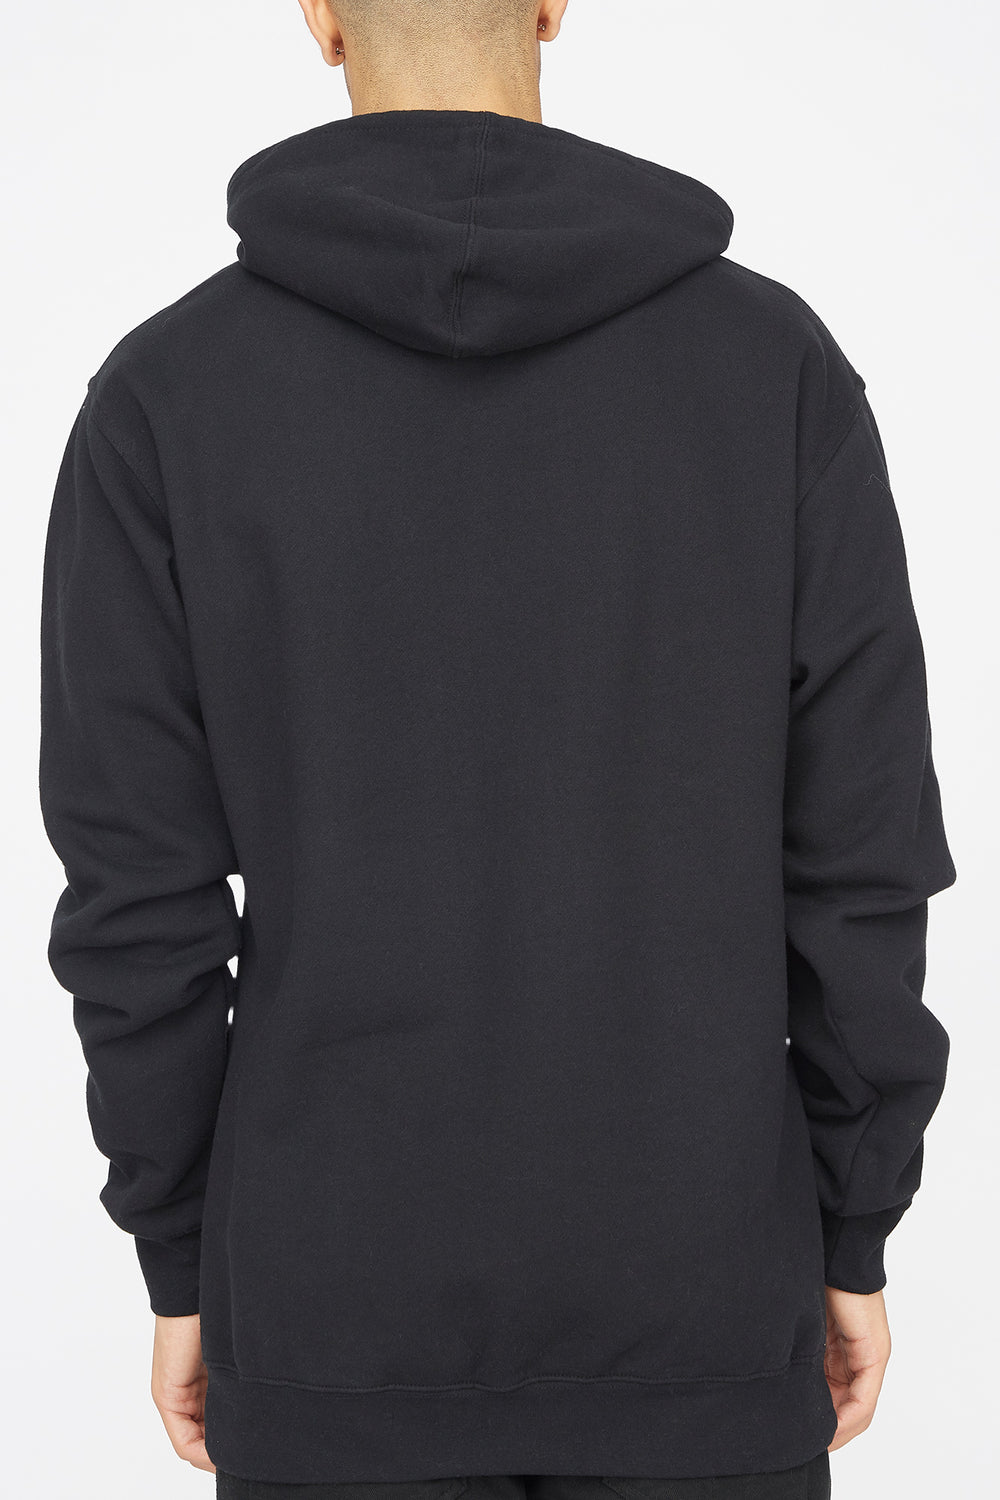 Grizzly Faceoff Popover Hoodie Black